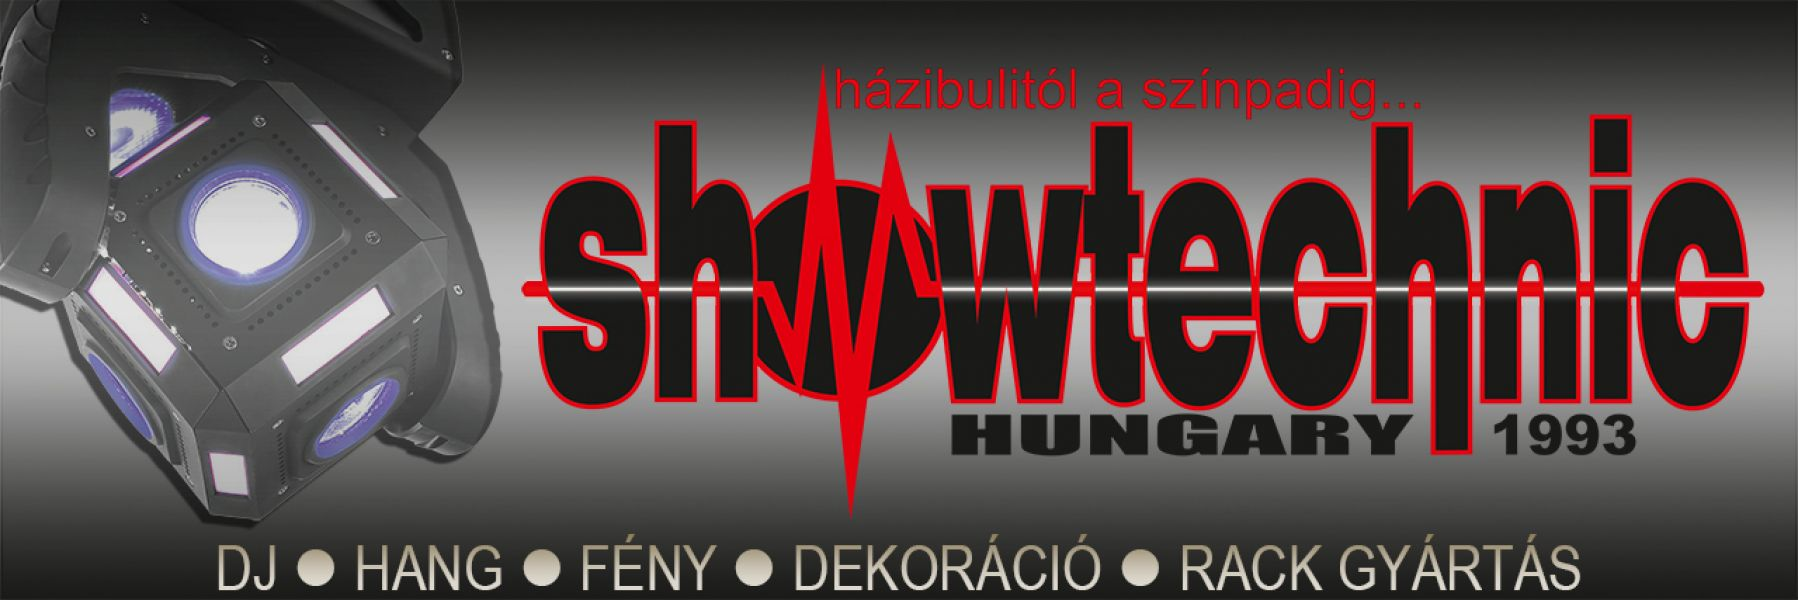 SHOWTECHNIC HUNGARY 2003 'DJ - HANG - FÉNY - DEKOR - RACK'